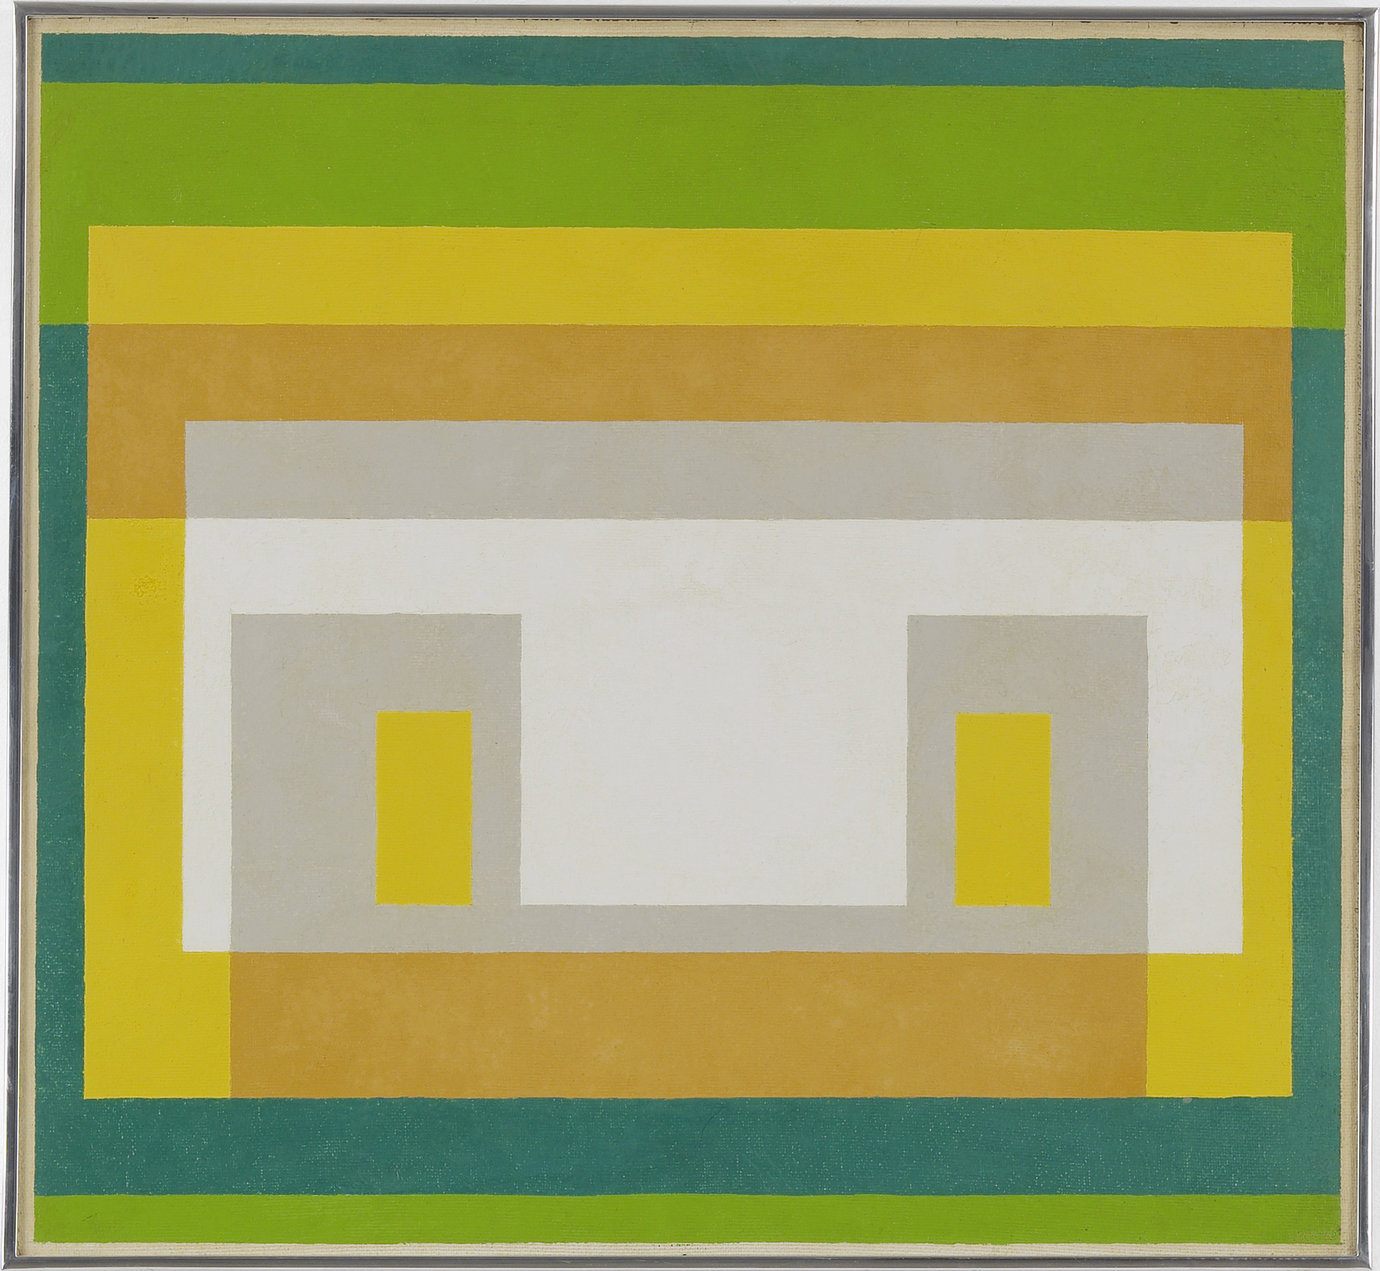 ", 1947-1955. Oil on masonite, 26"" x 28-1/4"" (66 cm x 71.8 cm)."